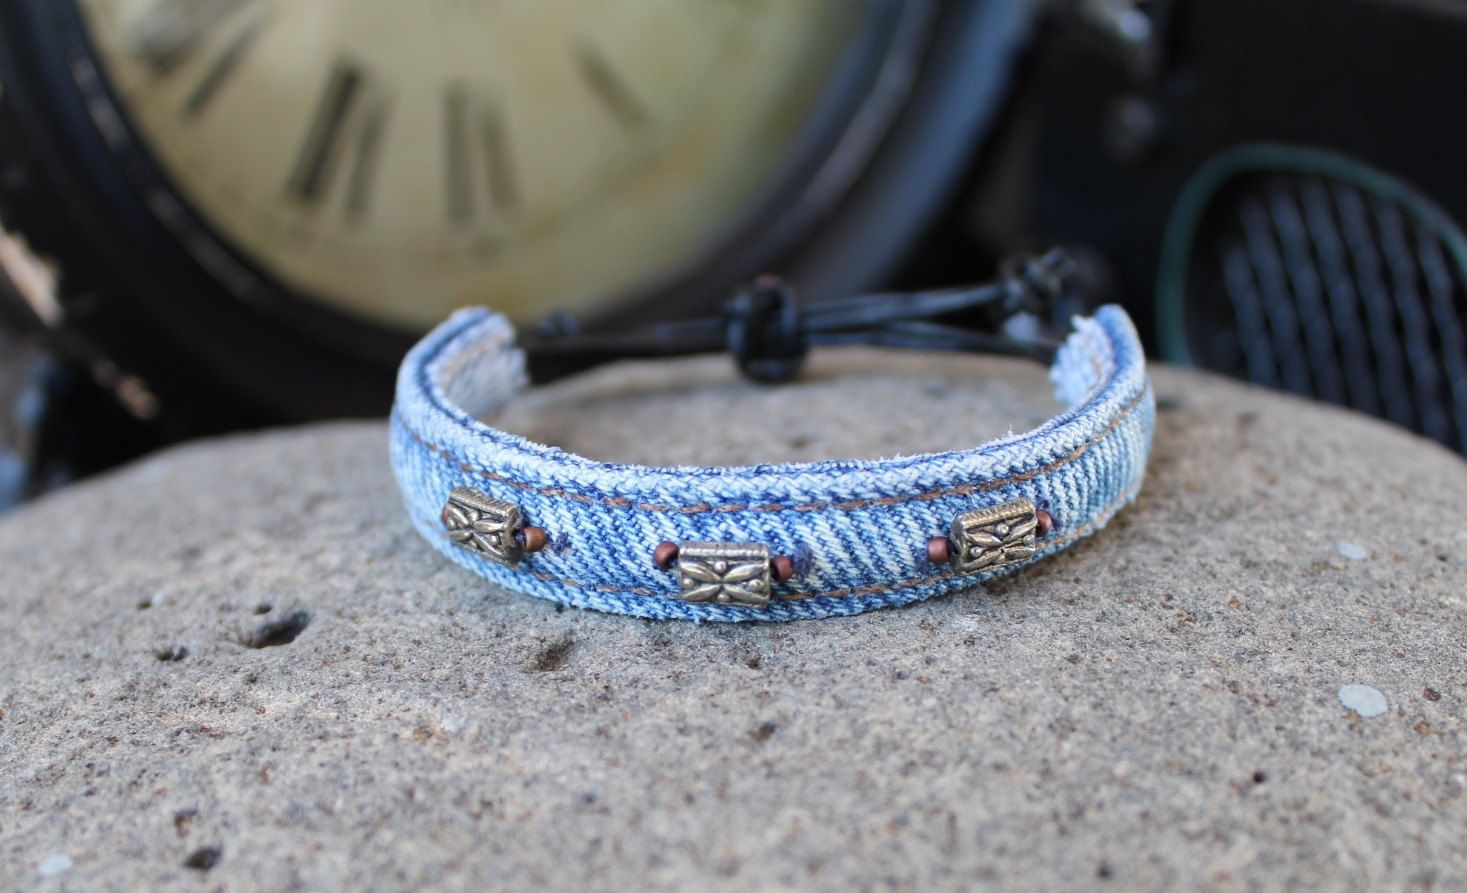 Denim Beaded Bracelet with Three Silver Beads Each Surround by Two Side Beads with a Black Leather Pull Closure - 466575421 by AllintheJeans on Etsy